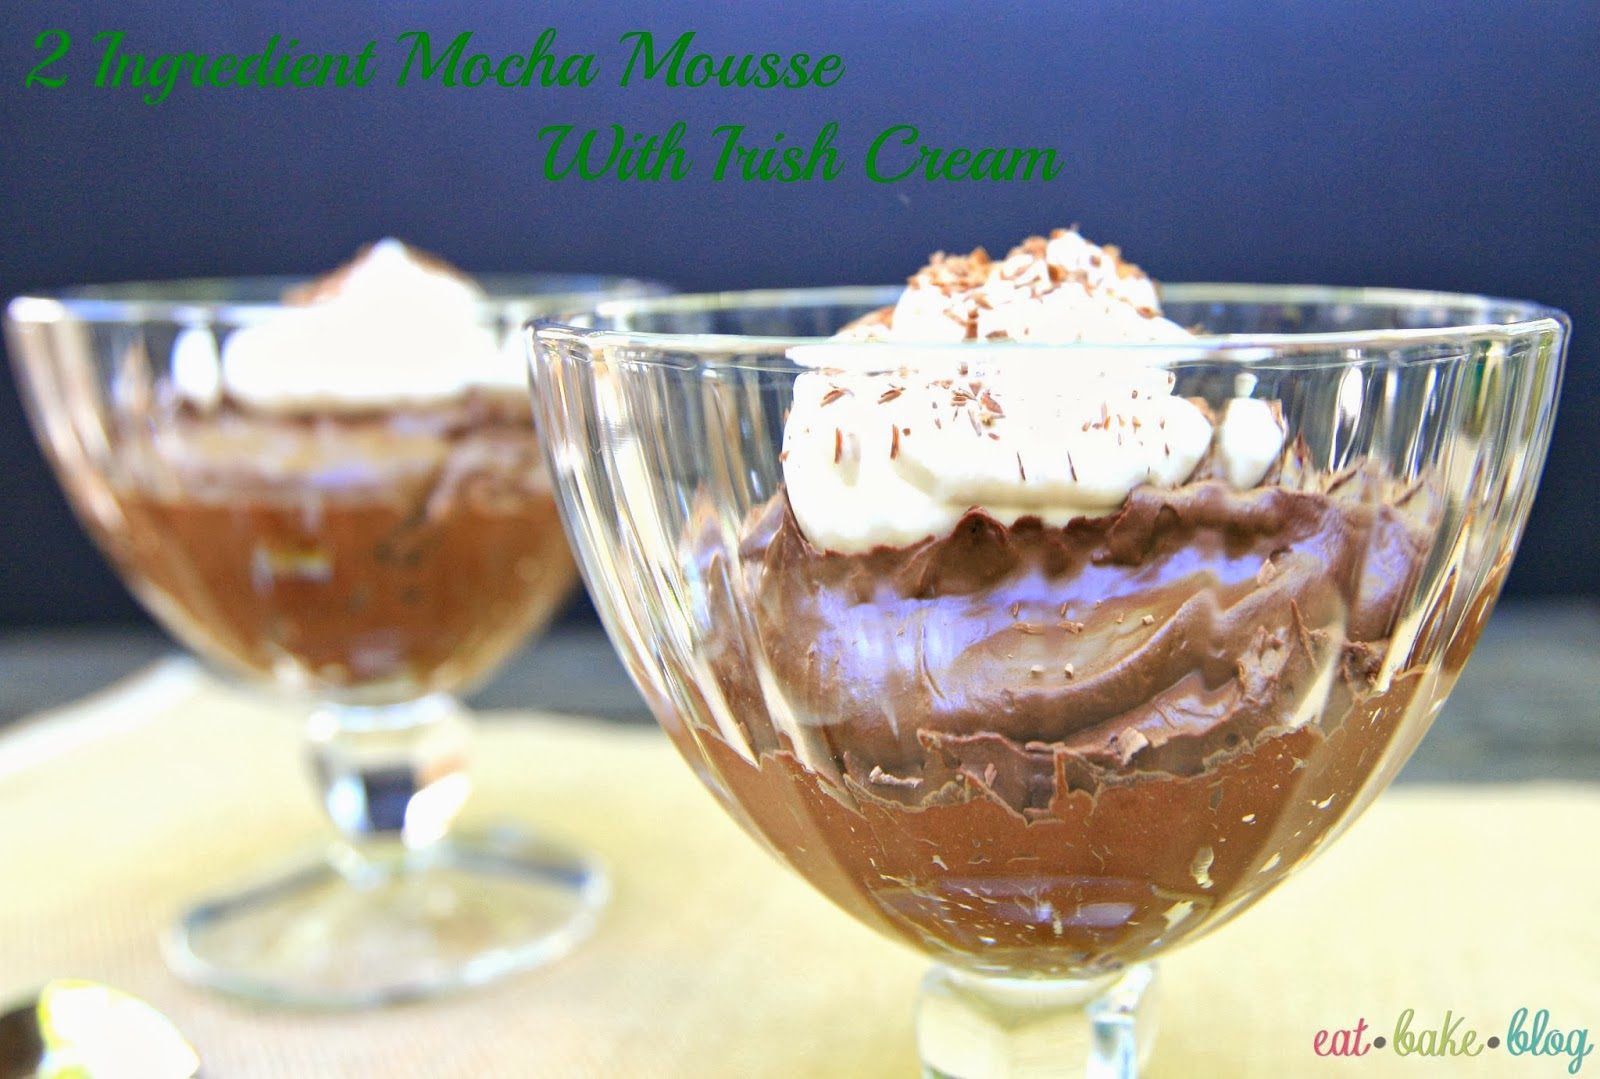 2 ingredient chocolate mousse easy chocolate mousse best chocolate mousse recipe chocolate mousse with bailey's recipe quick chocolate mousse st. patrick's day dessert recipe